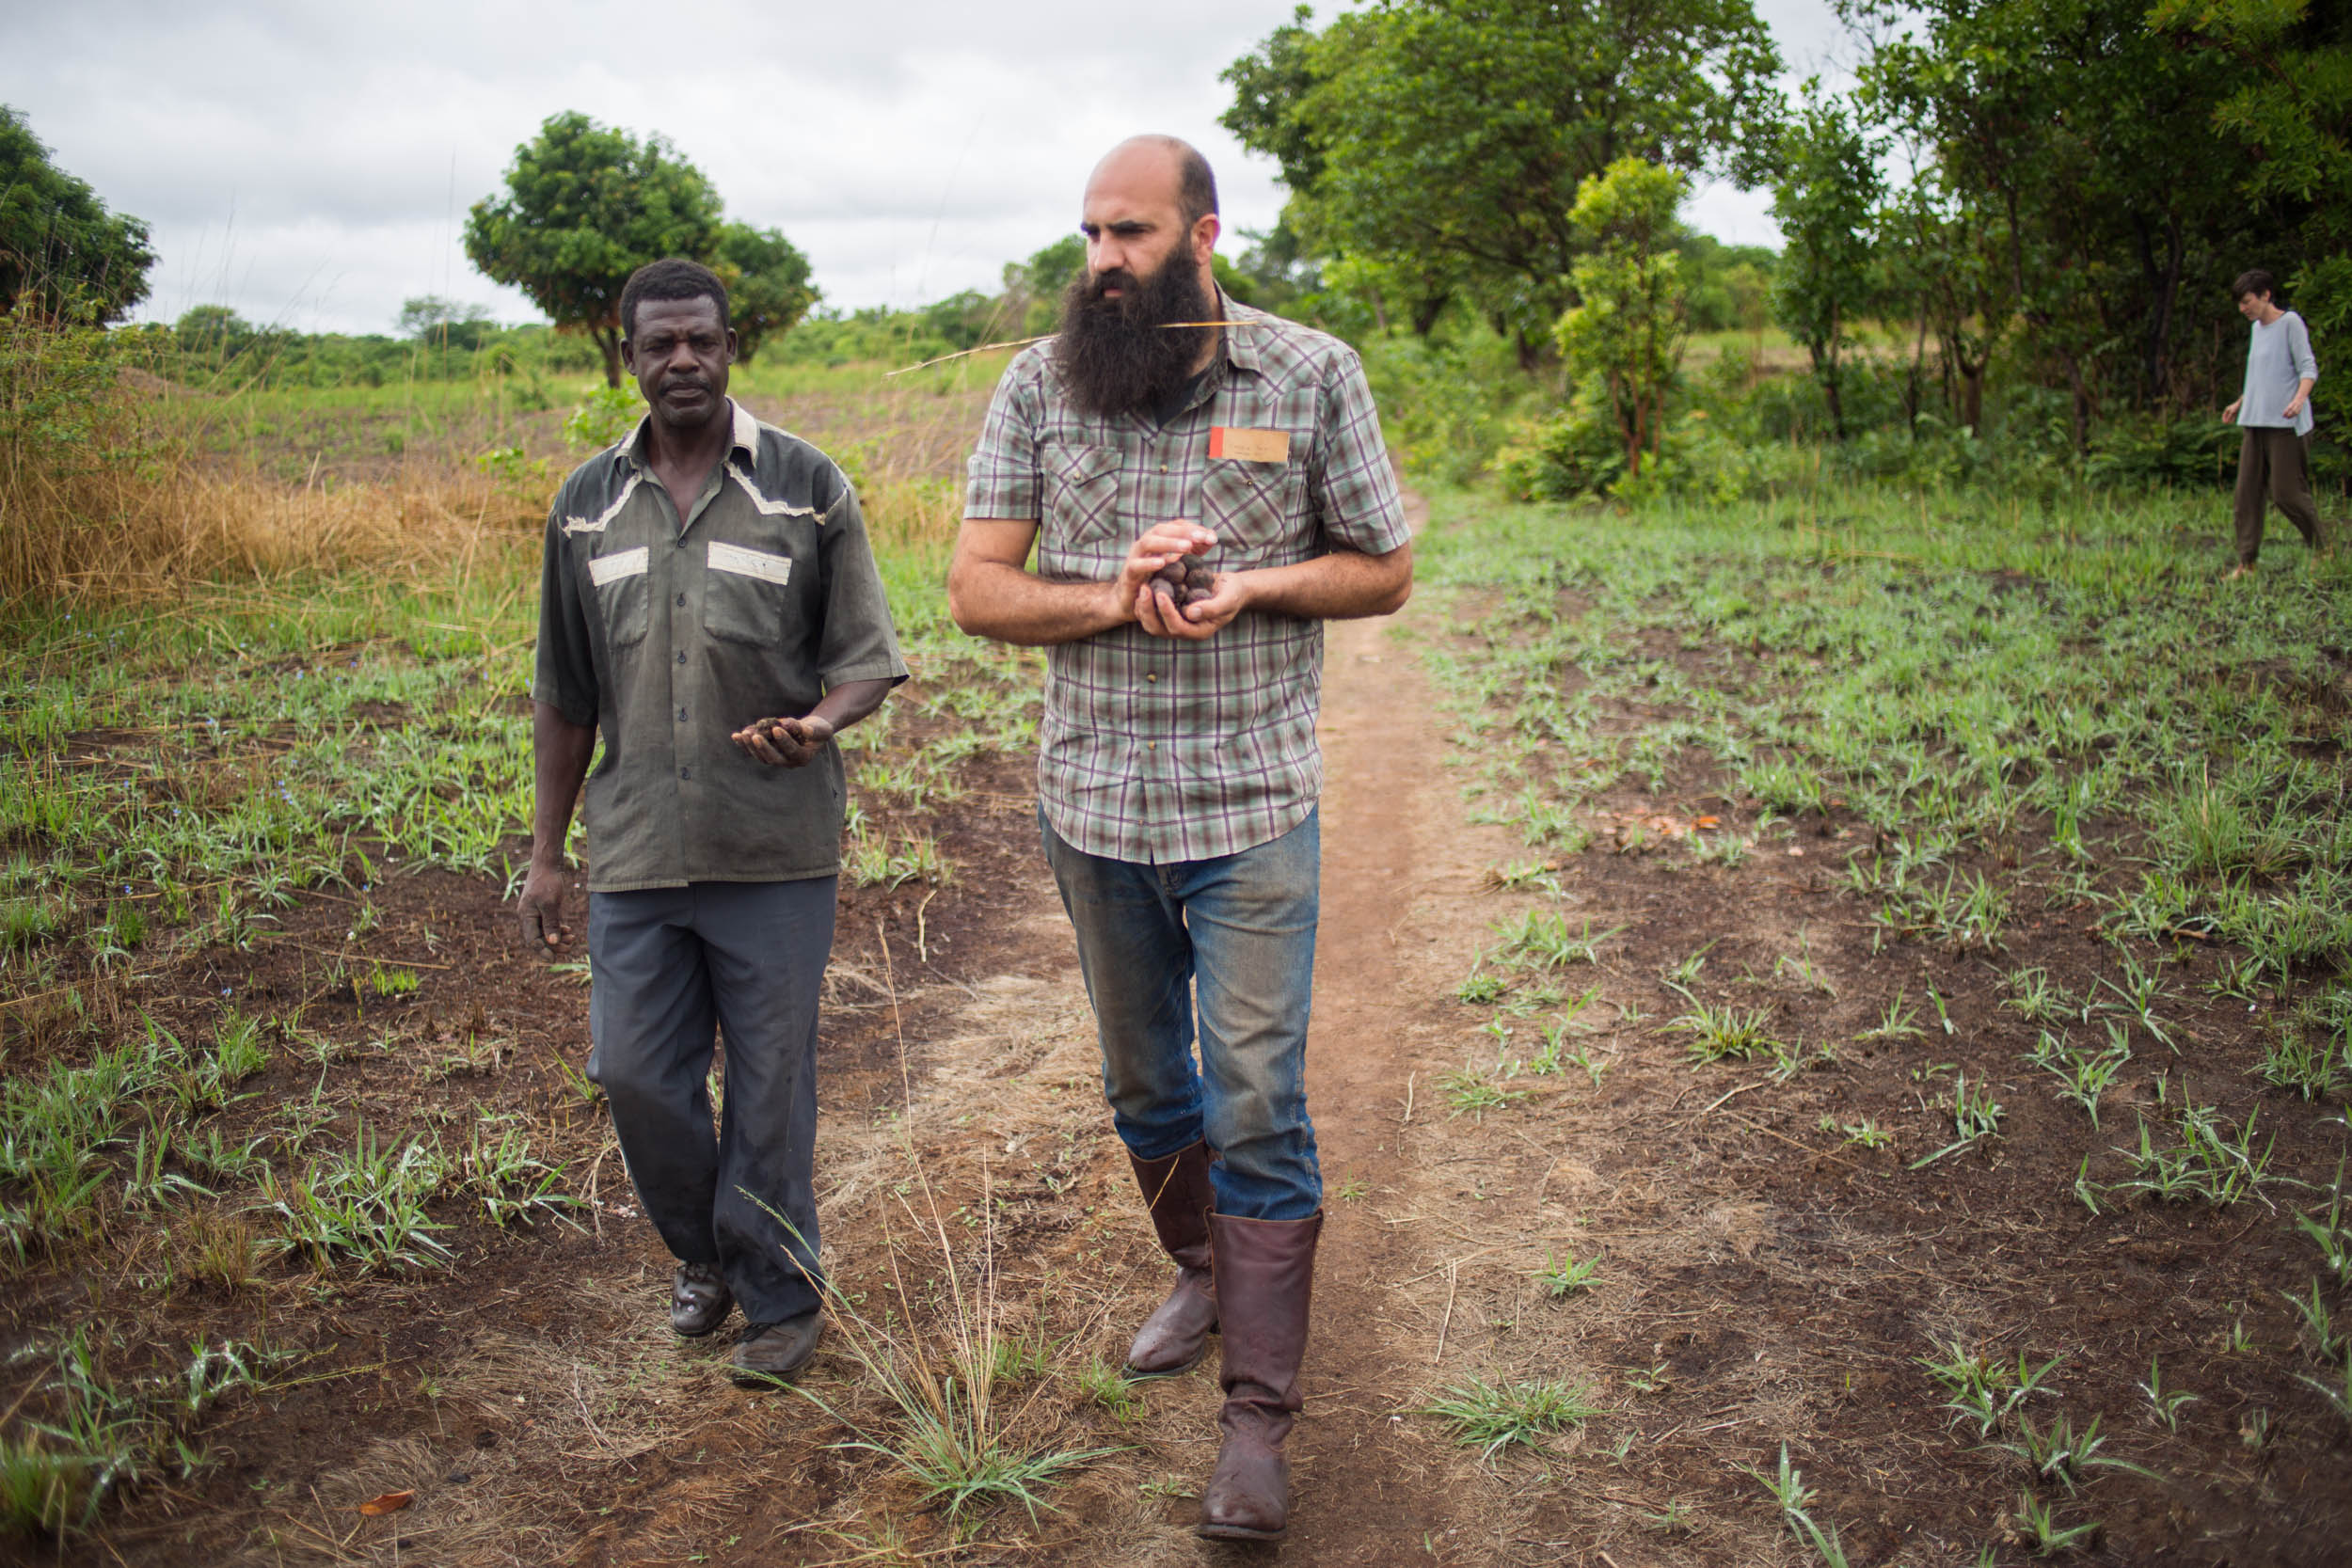 Zambeezi Founder André walking and discussing farming with Zambian Beekeeper and Arborist